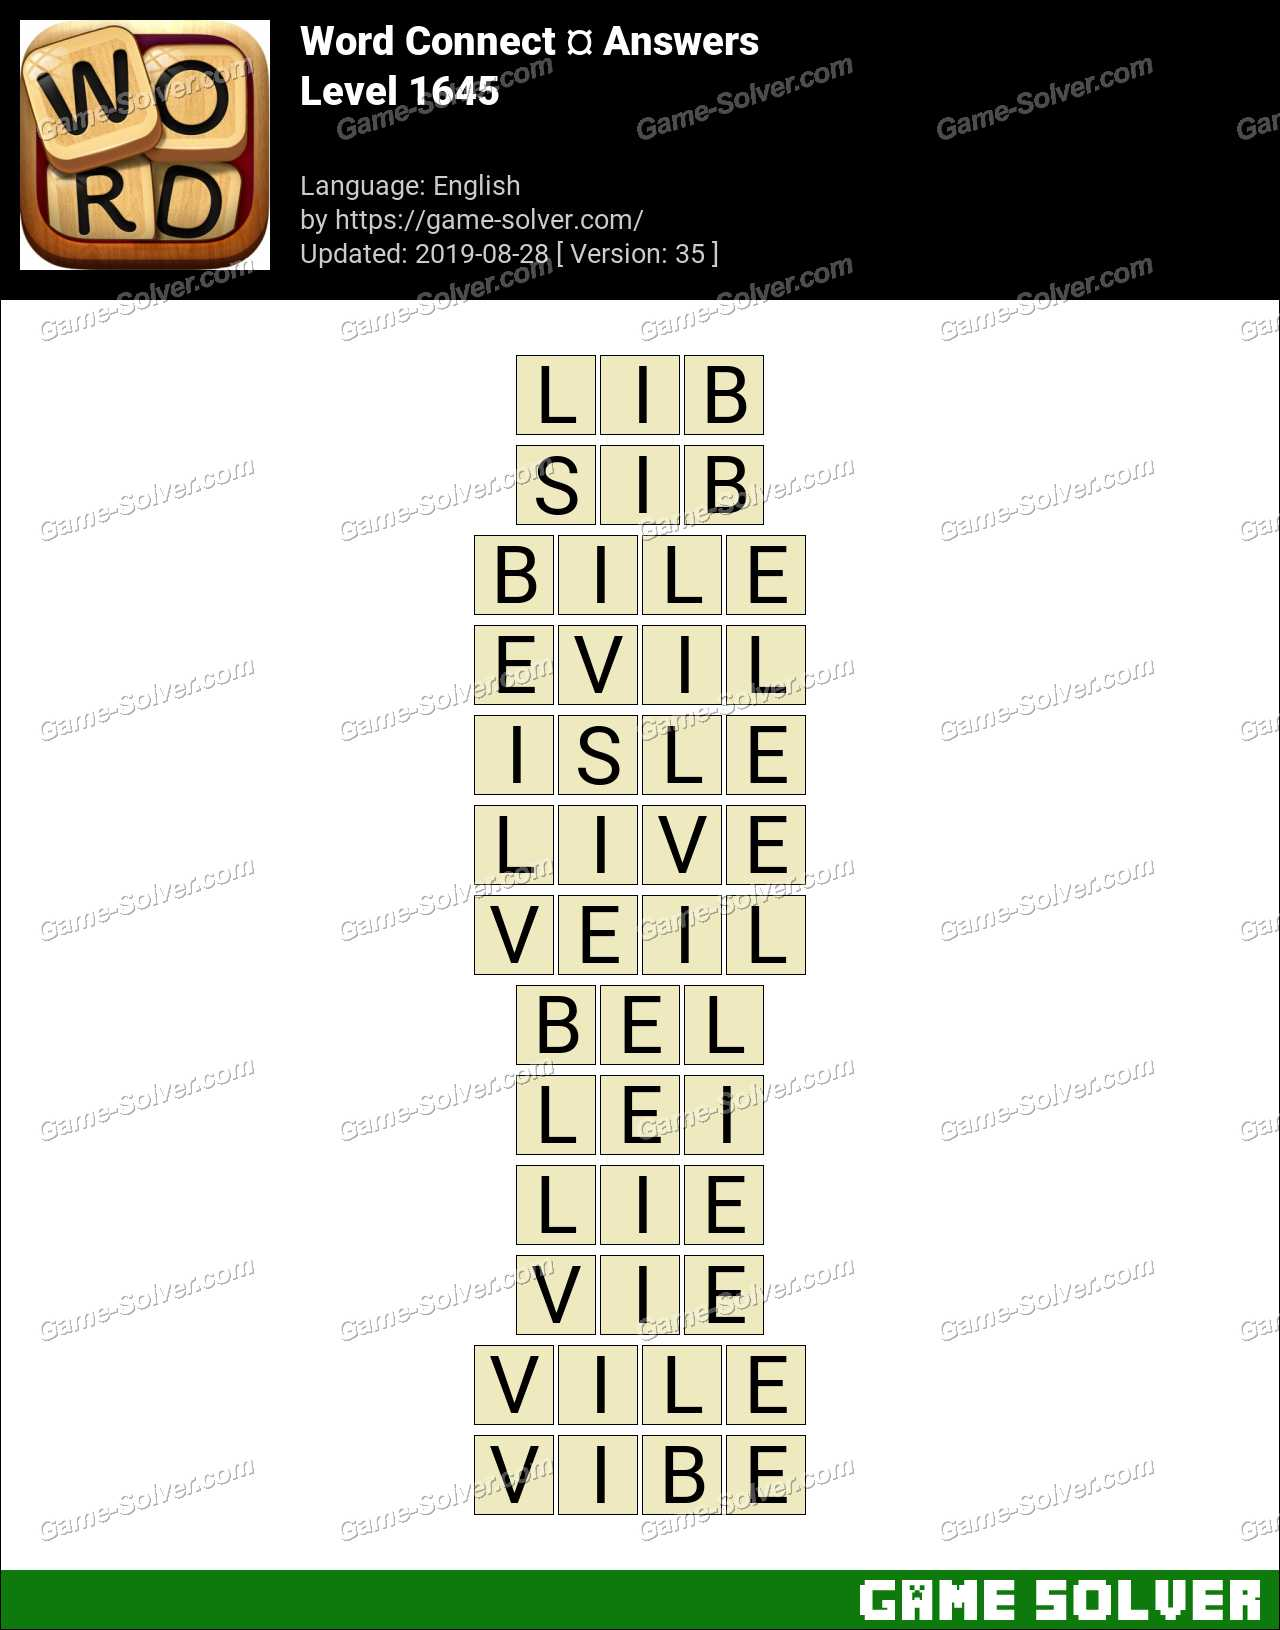 Word Connect Level 1645 Answers